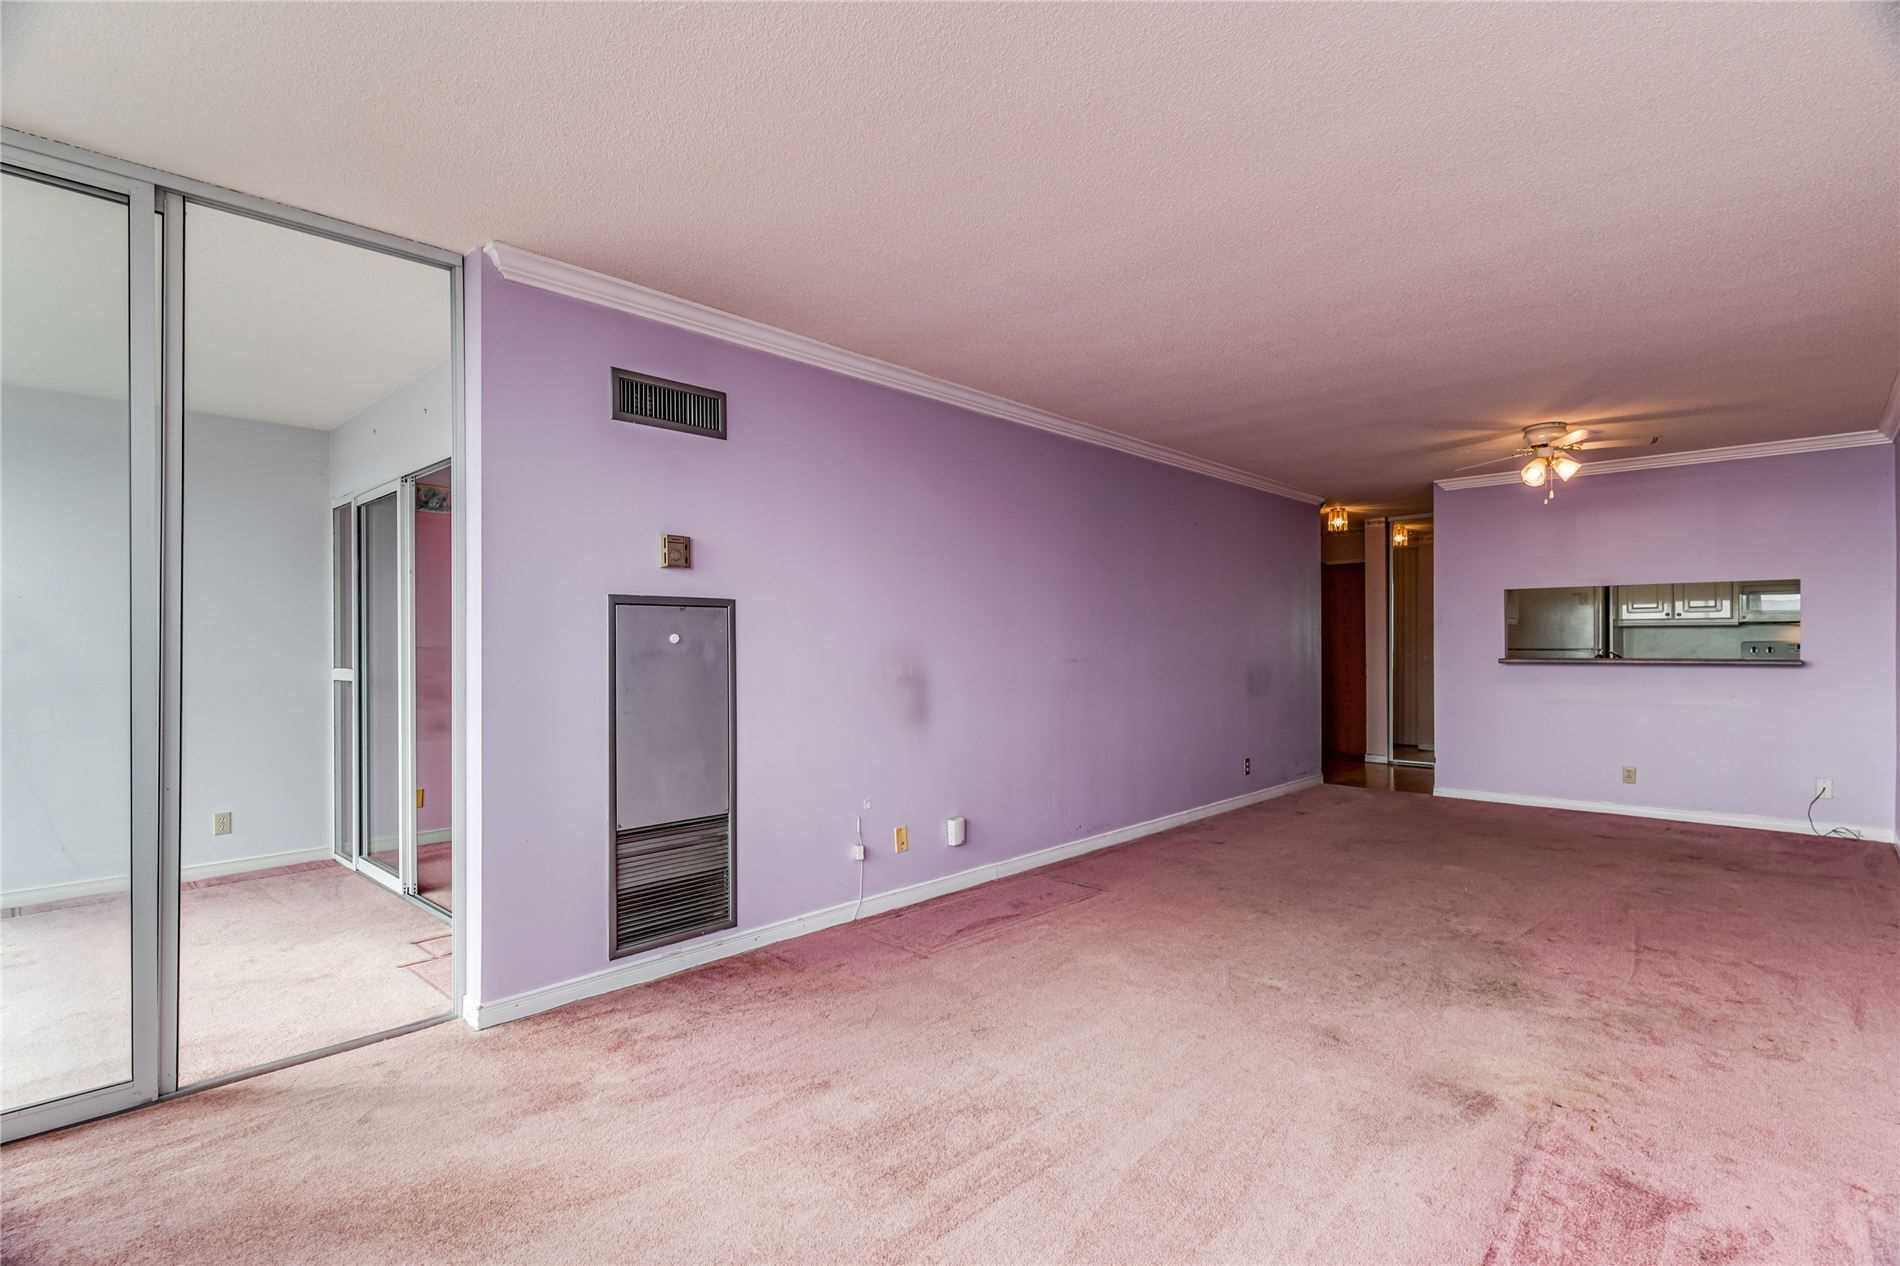 Image 7 of 40 showing inside of 2 Bedroom Condo Apt Apartment for Sale at 1665 Pickering Pkwy Unit# 812, Pickering L1V6L4